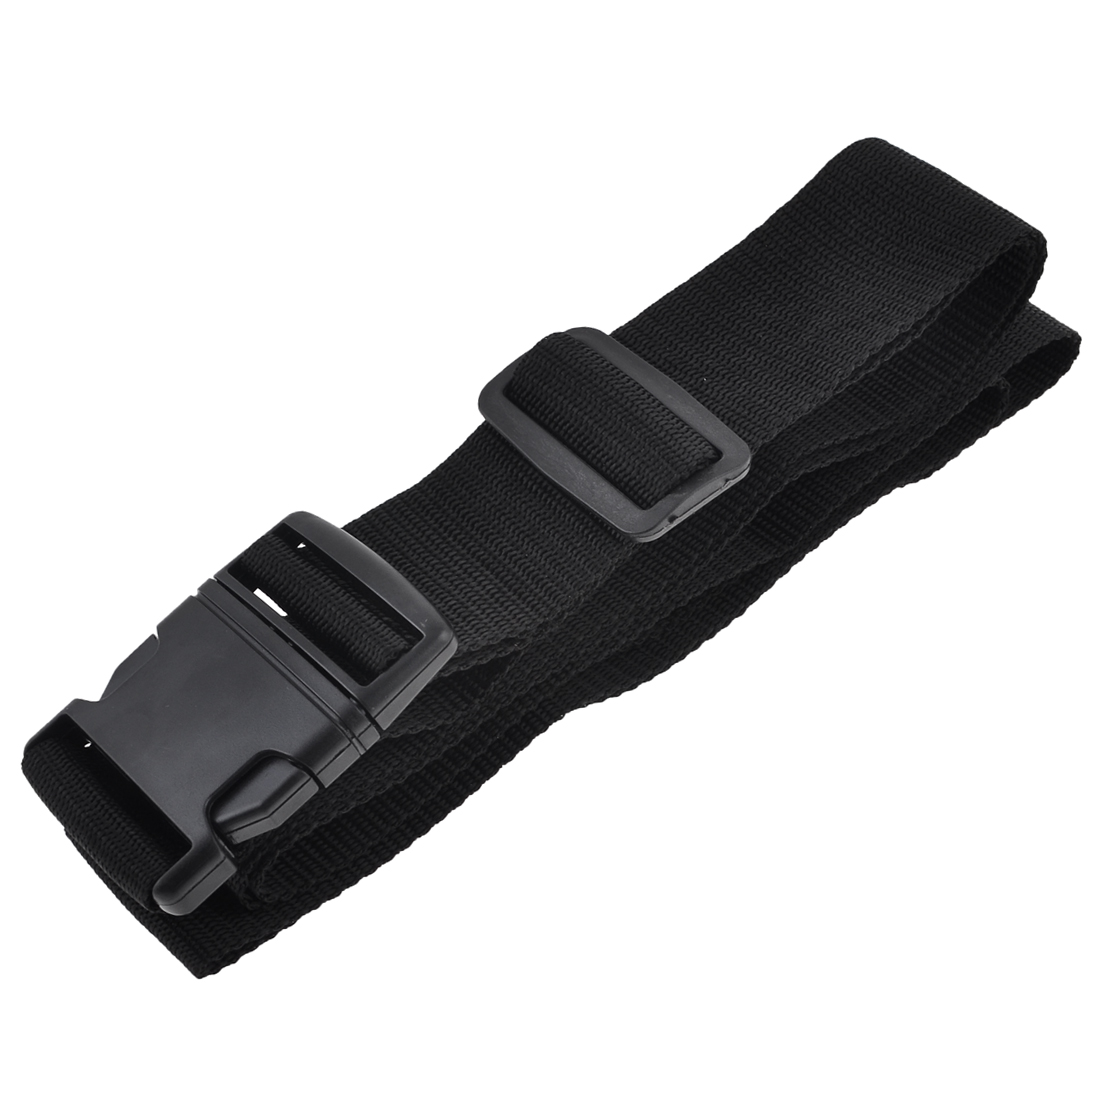 Unique Bargains Release Buckle 3 Digits Black Nylon Locking Luggage Strap 6.63Ft - image 1 de 1